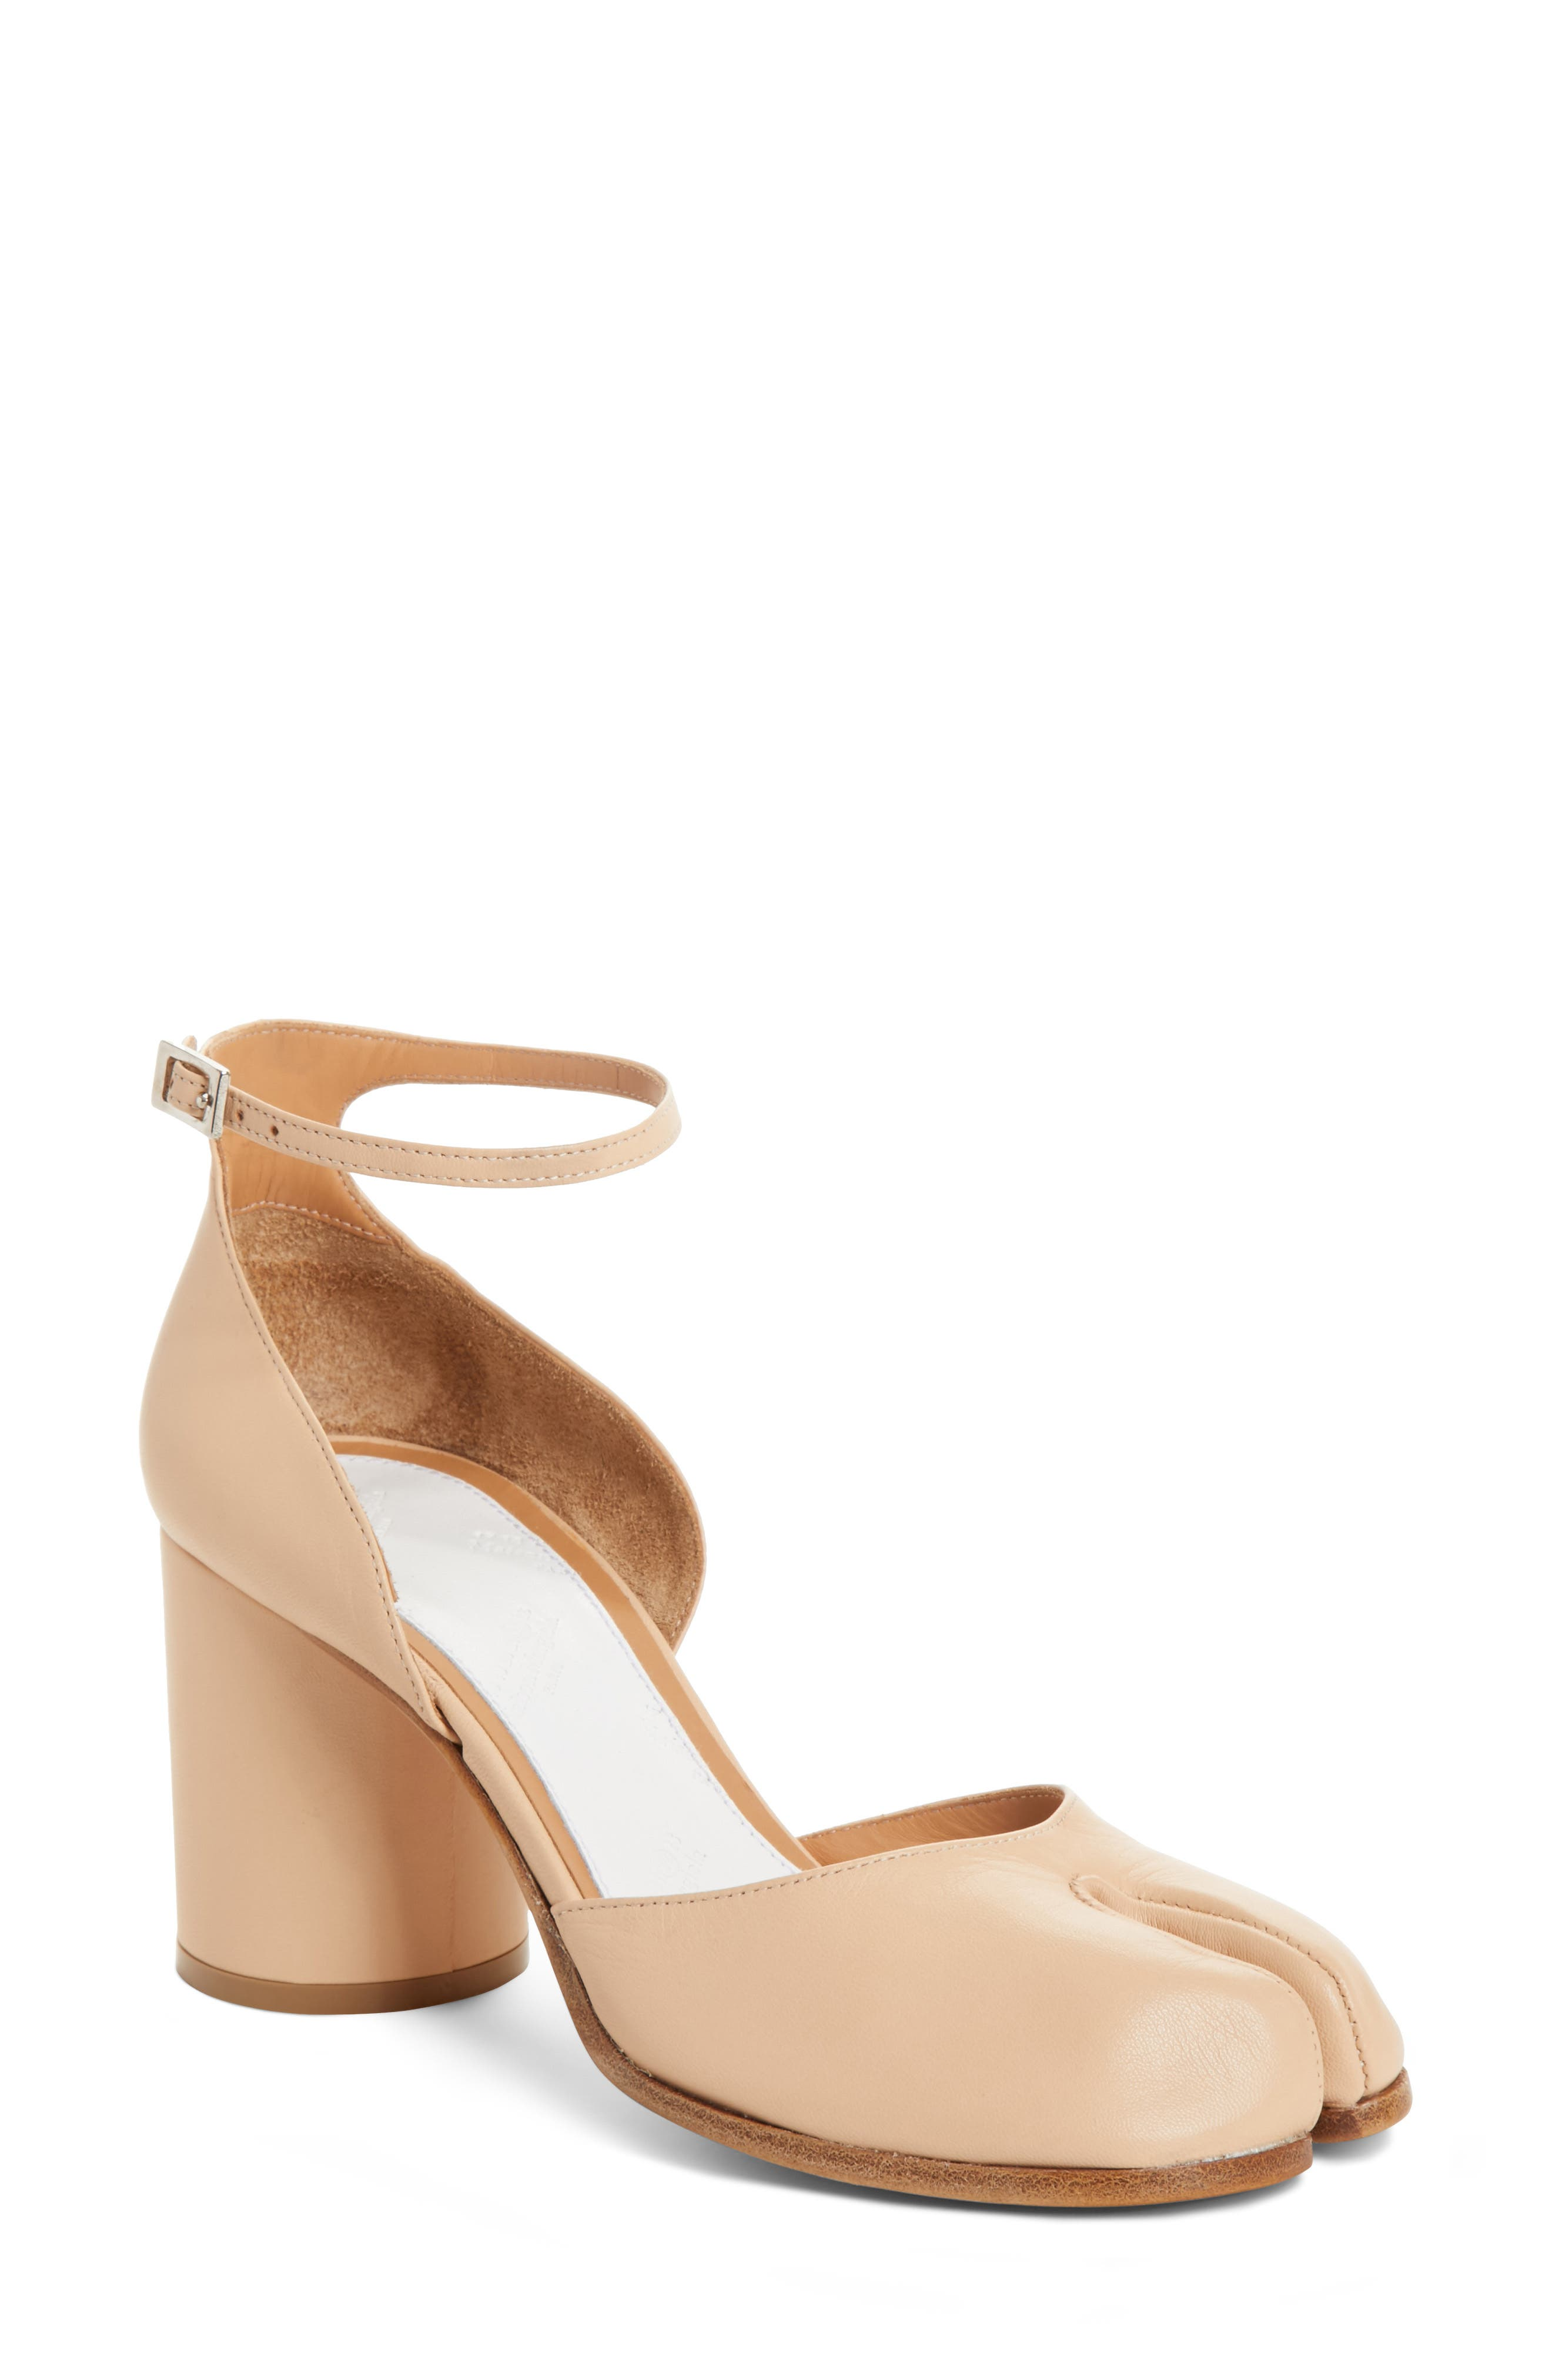 Tabi Ankle Strap Pump,                         Main,                         color, Ivory